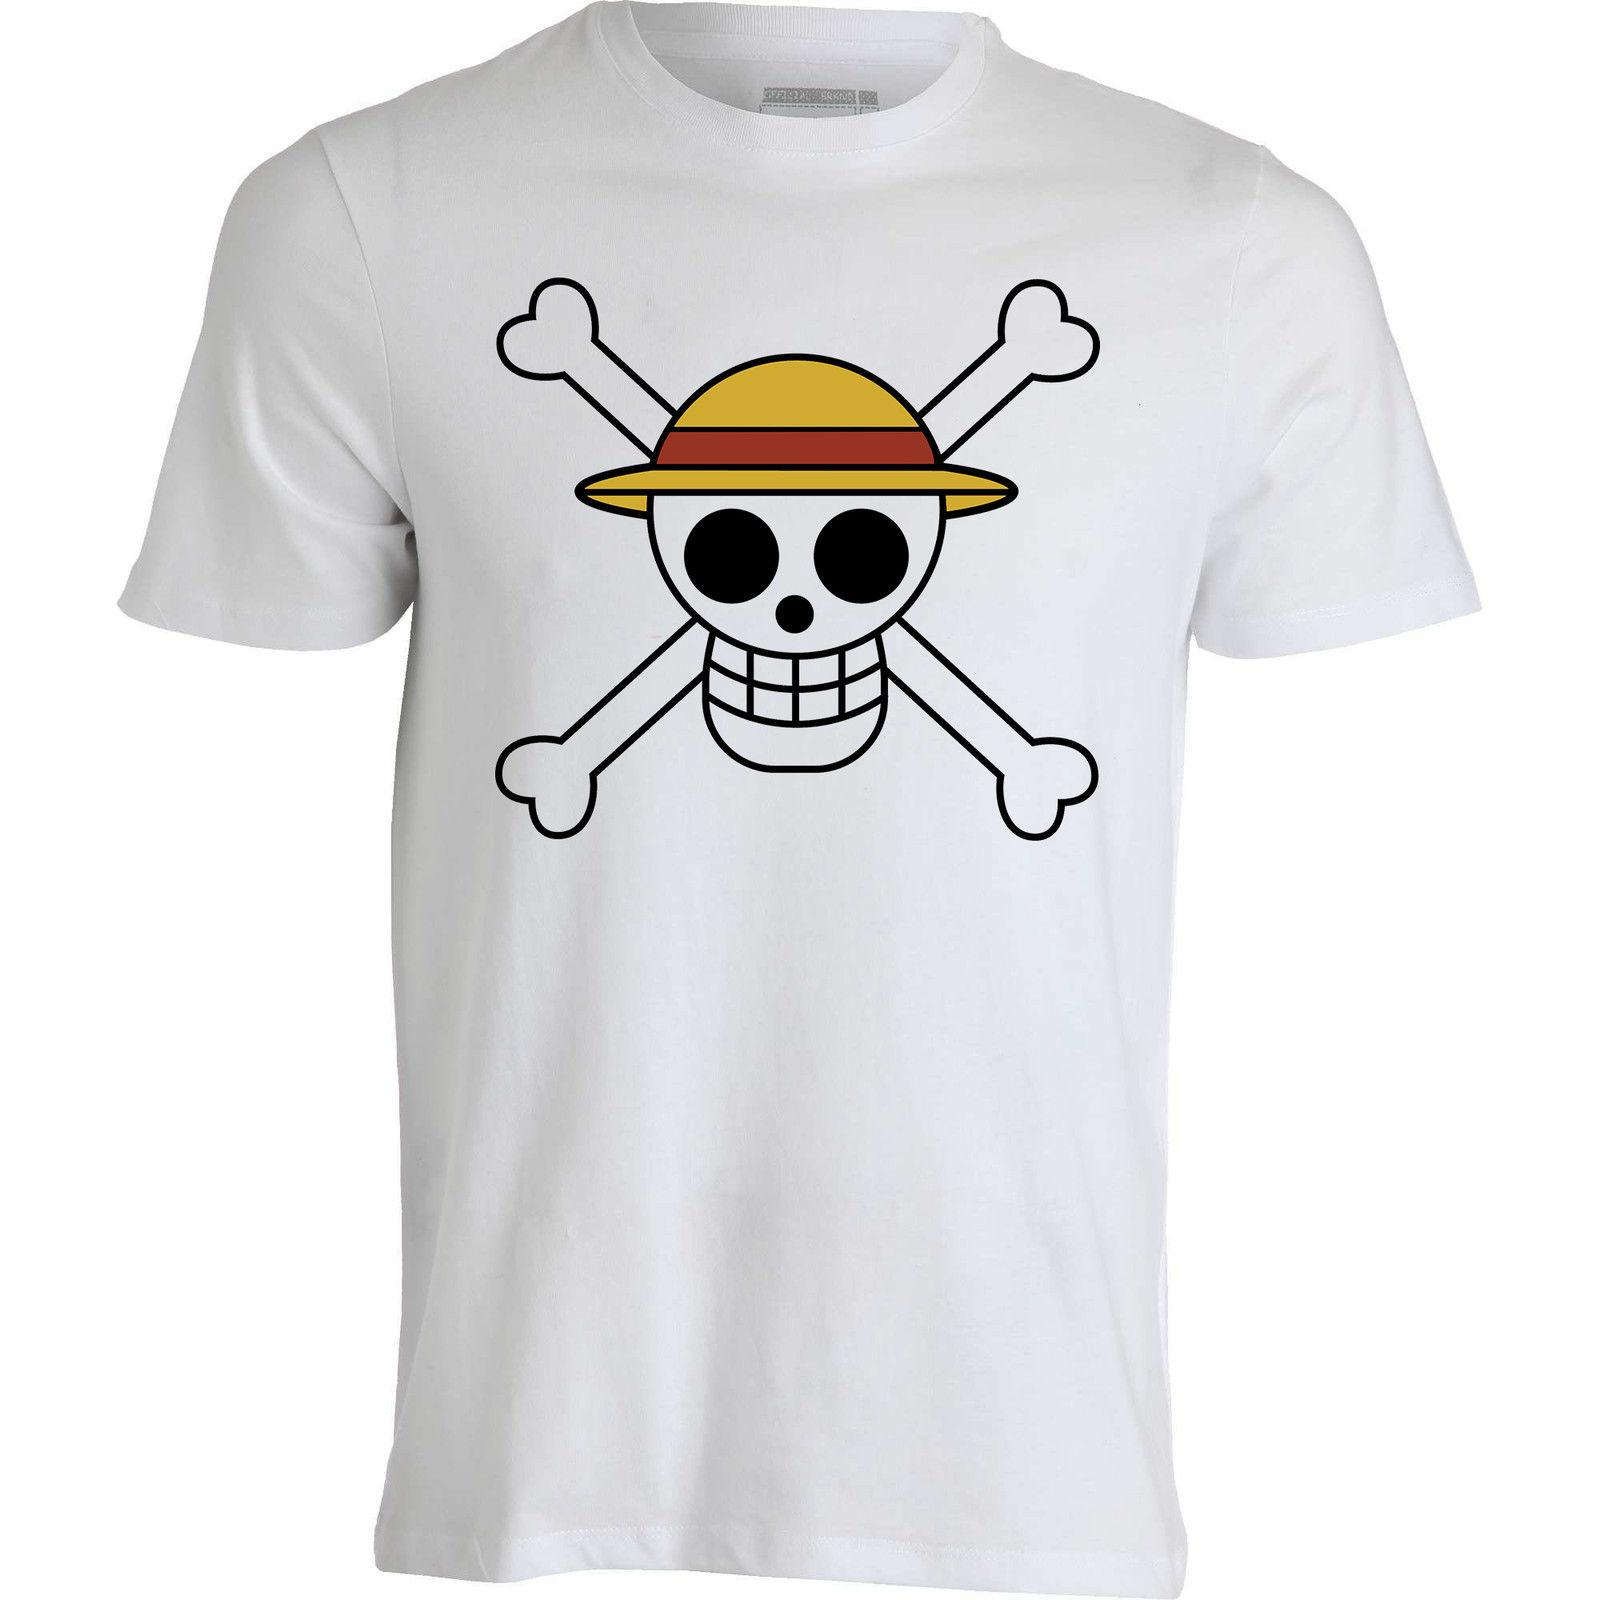 3597d116 One Piece Straw Hat Luffy Flag Anime Manga Japan Men'S Clothing T Shirt  White Newest 2018 T Shirt Men T Shirt T Shirt Site Online Tees From  Gaobei08, ...